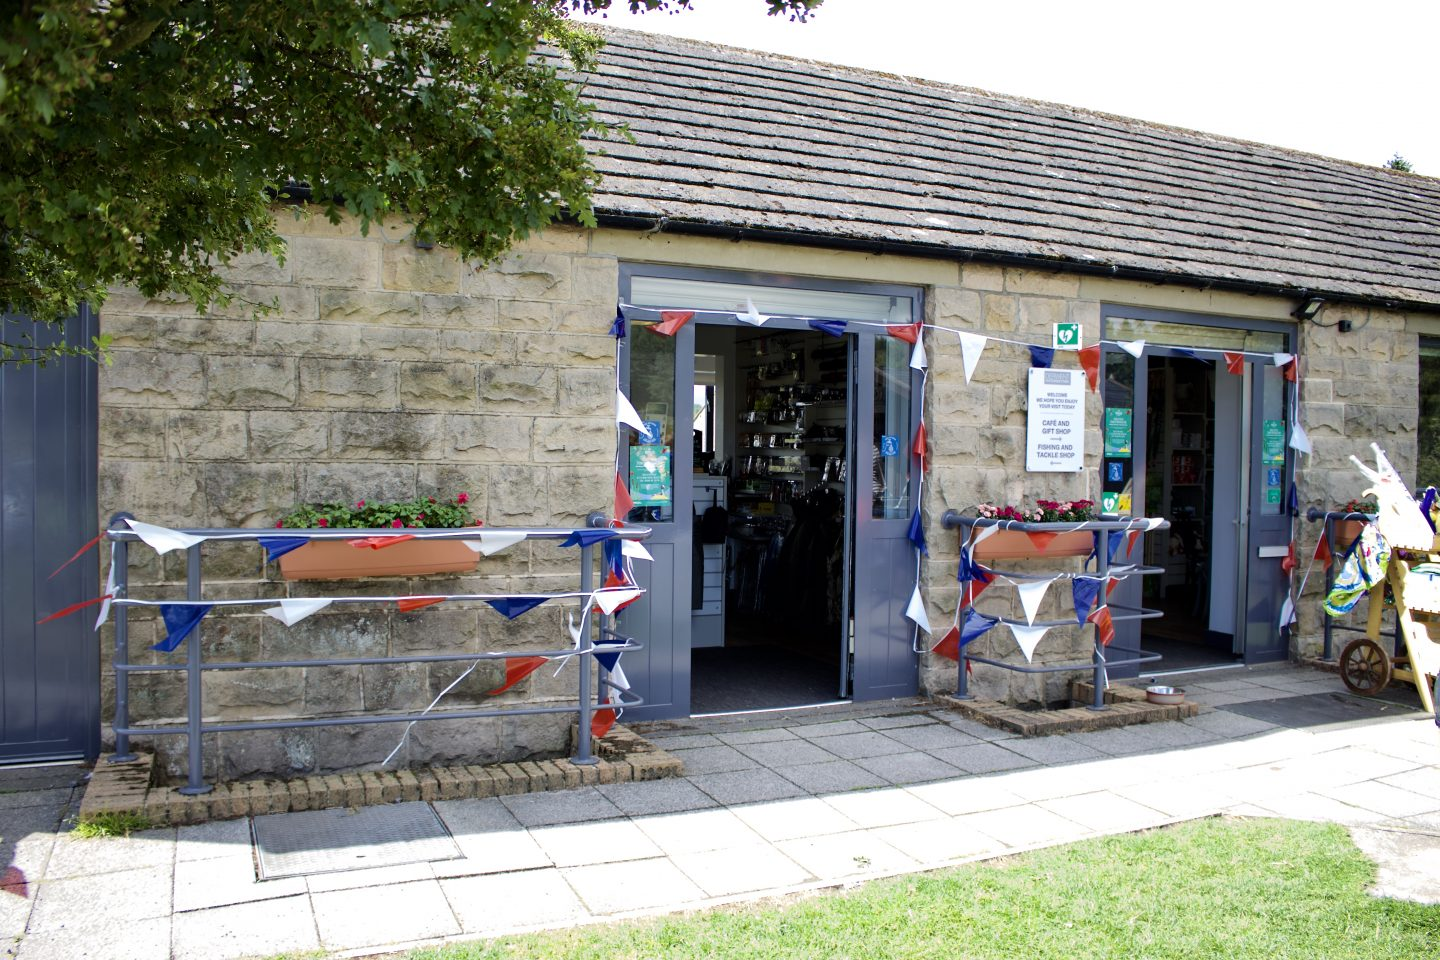 A photo of the outside of the cafe - a stone building with red, white and blue bunting